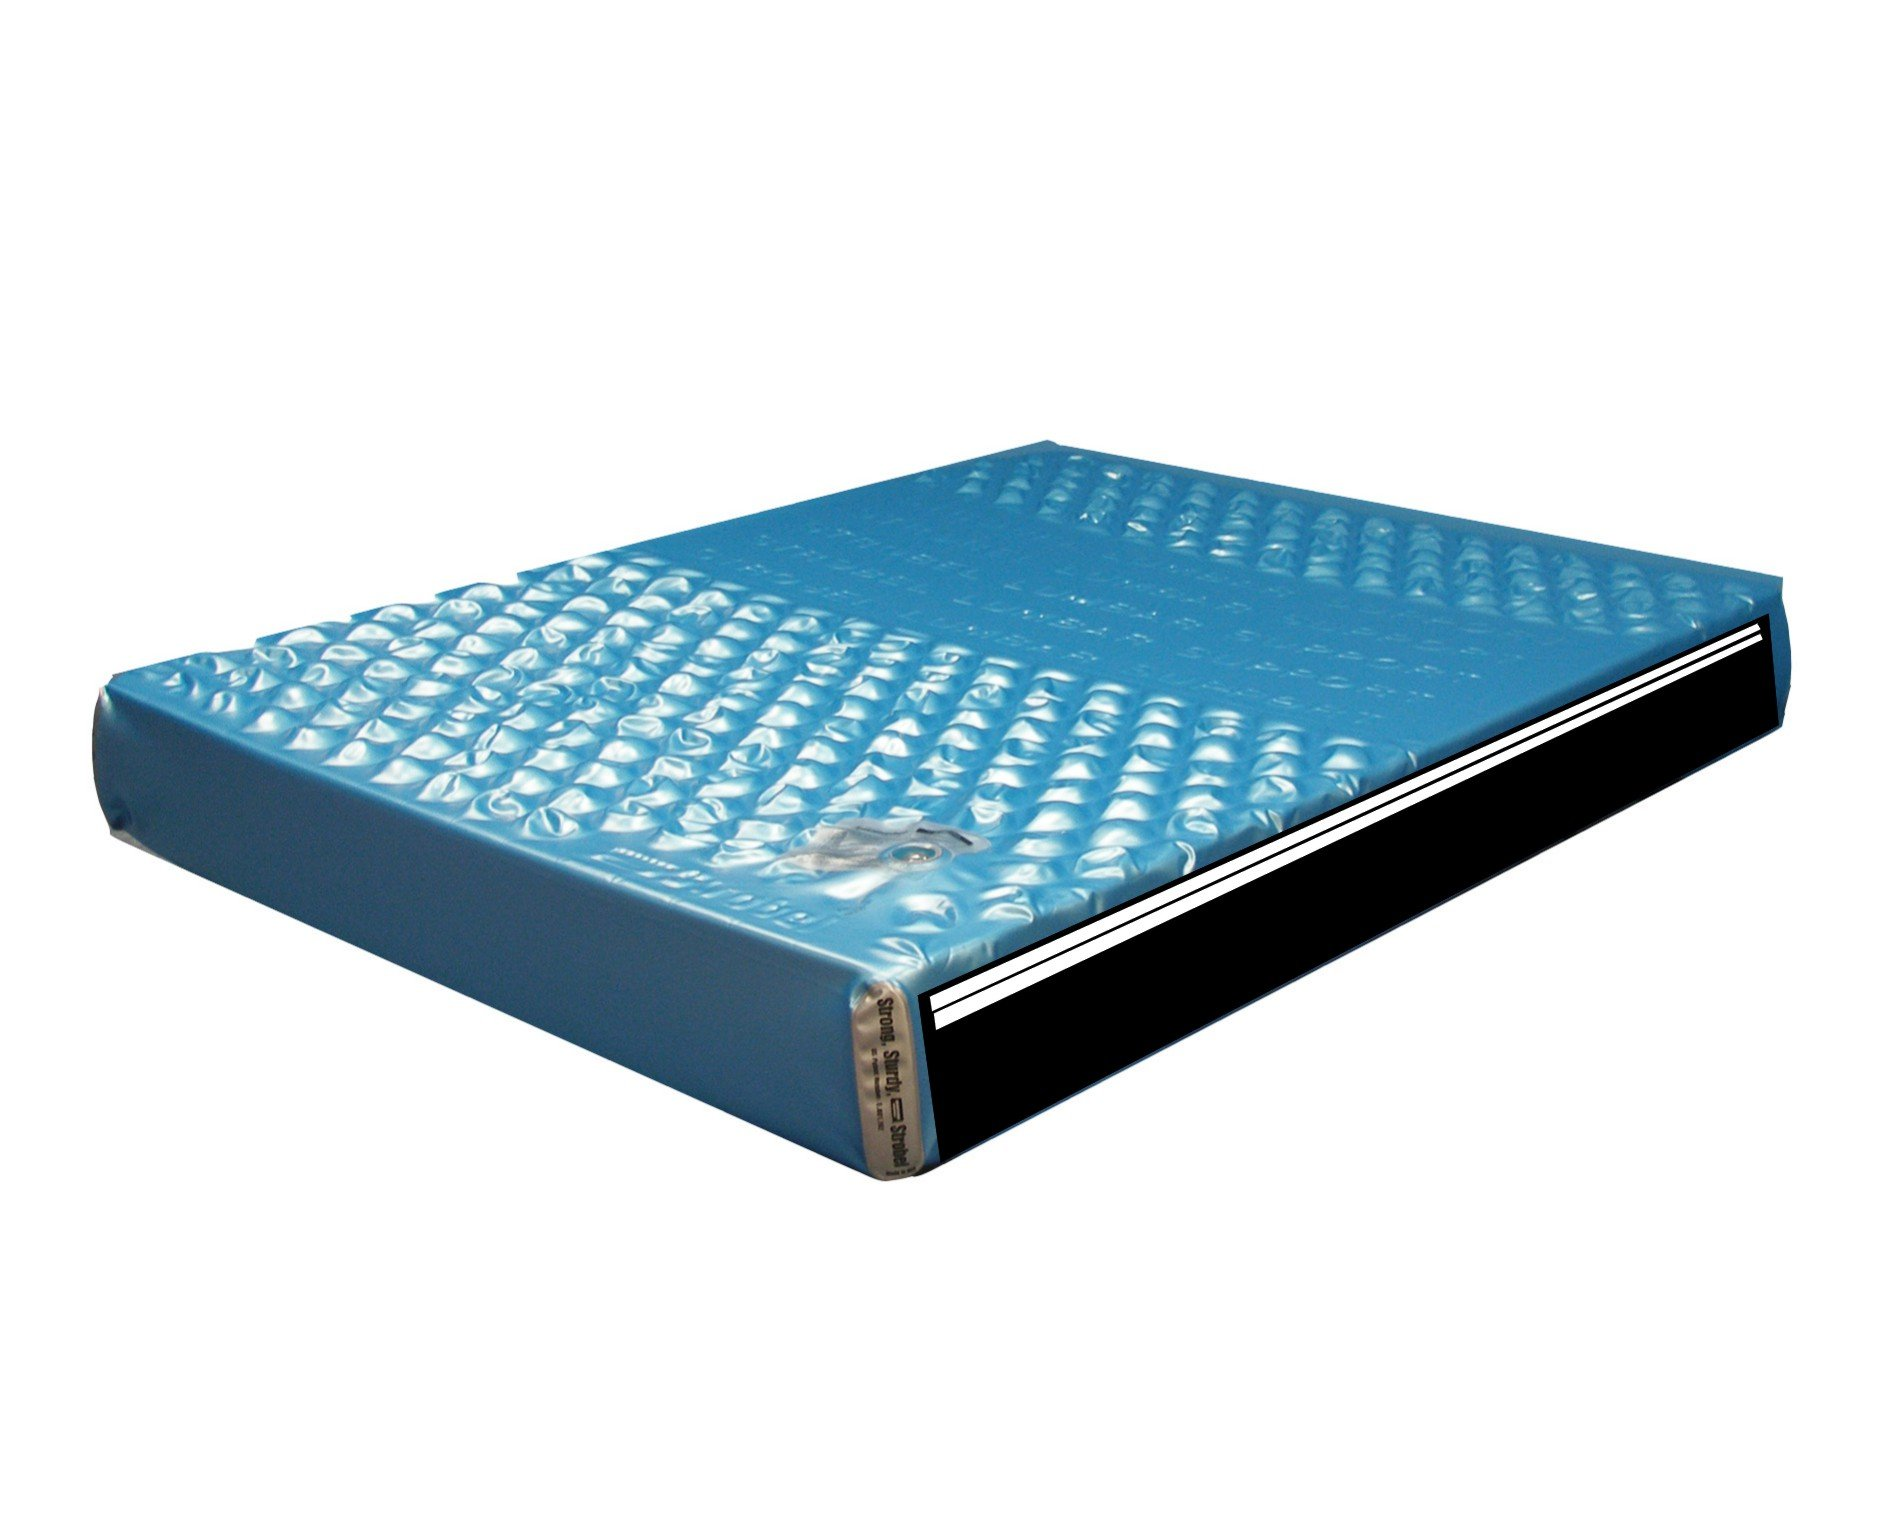 Strobel Organic Premium Hydro-Support 302 Waterbed Mattress 2 Layer Waveless King by Strobel Organic